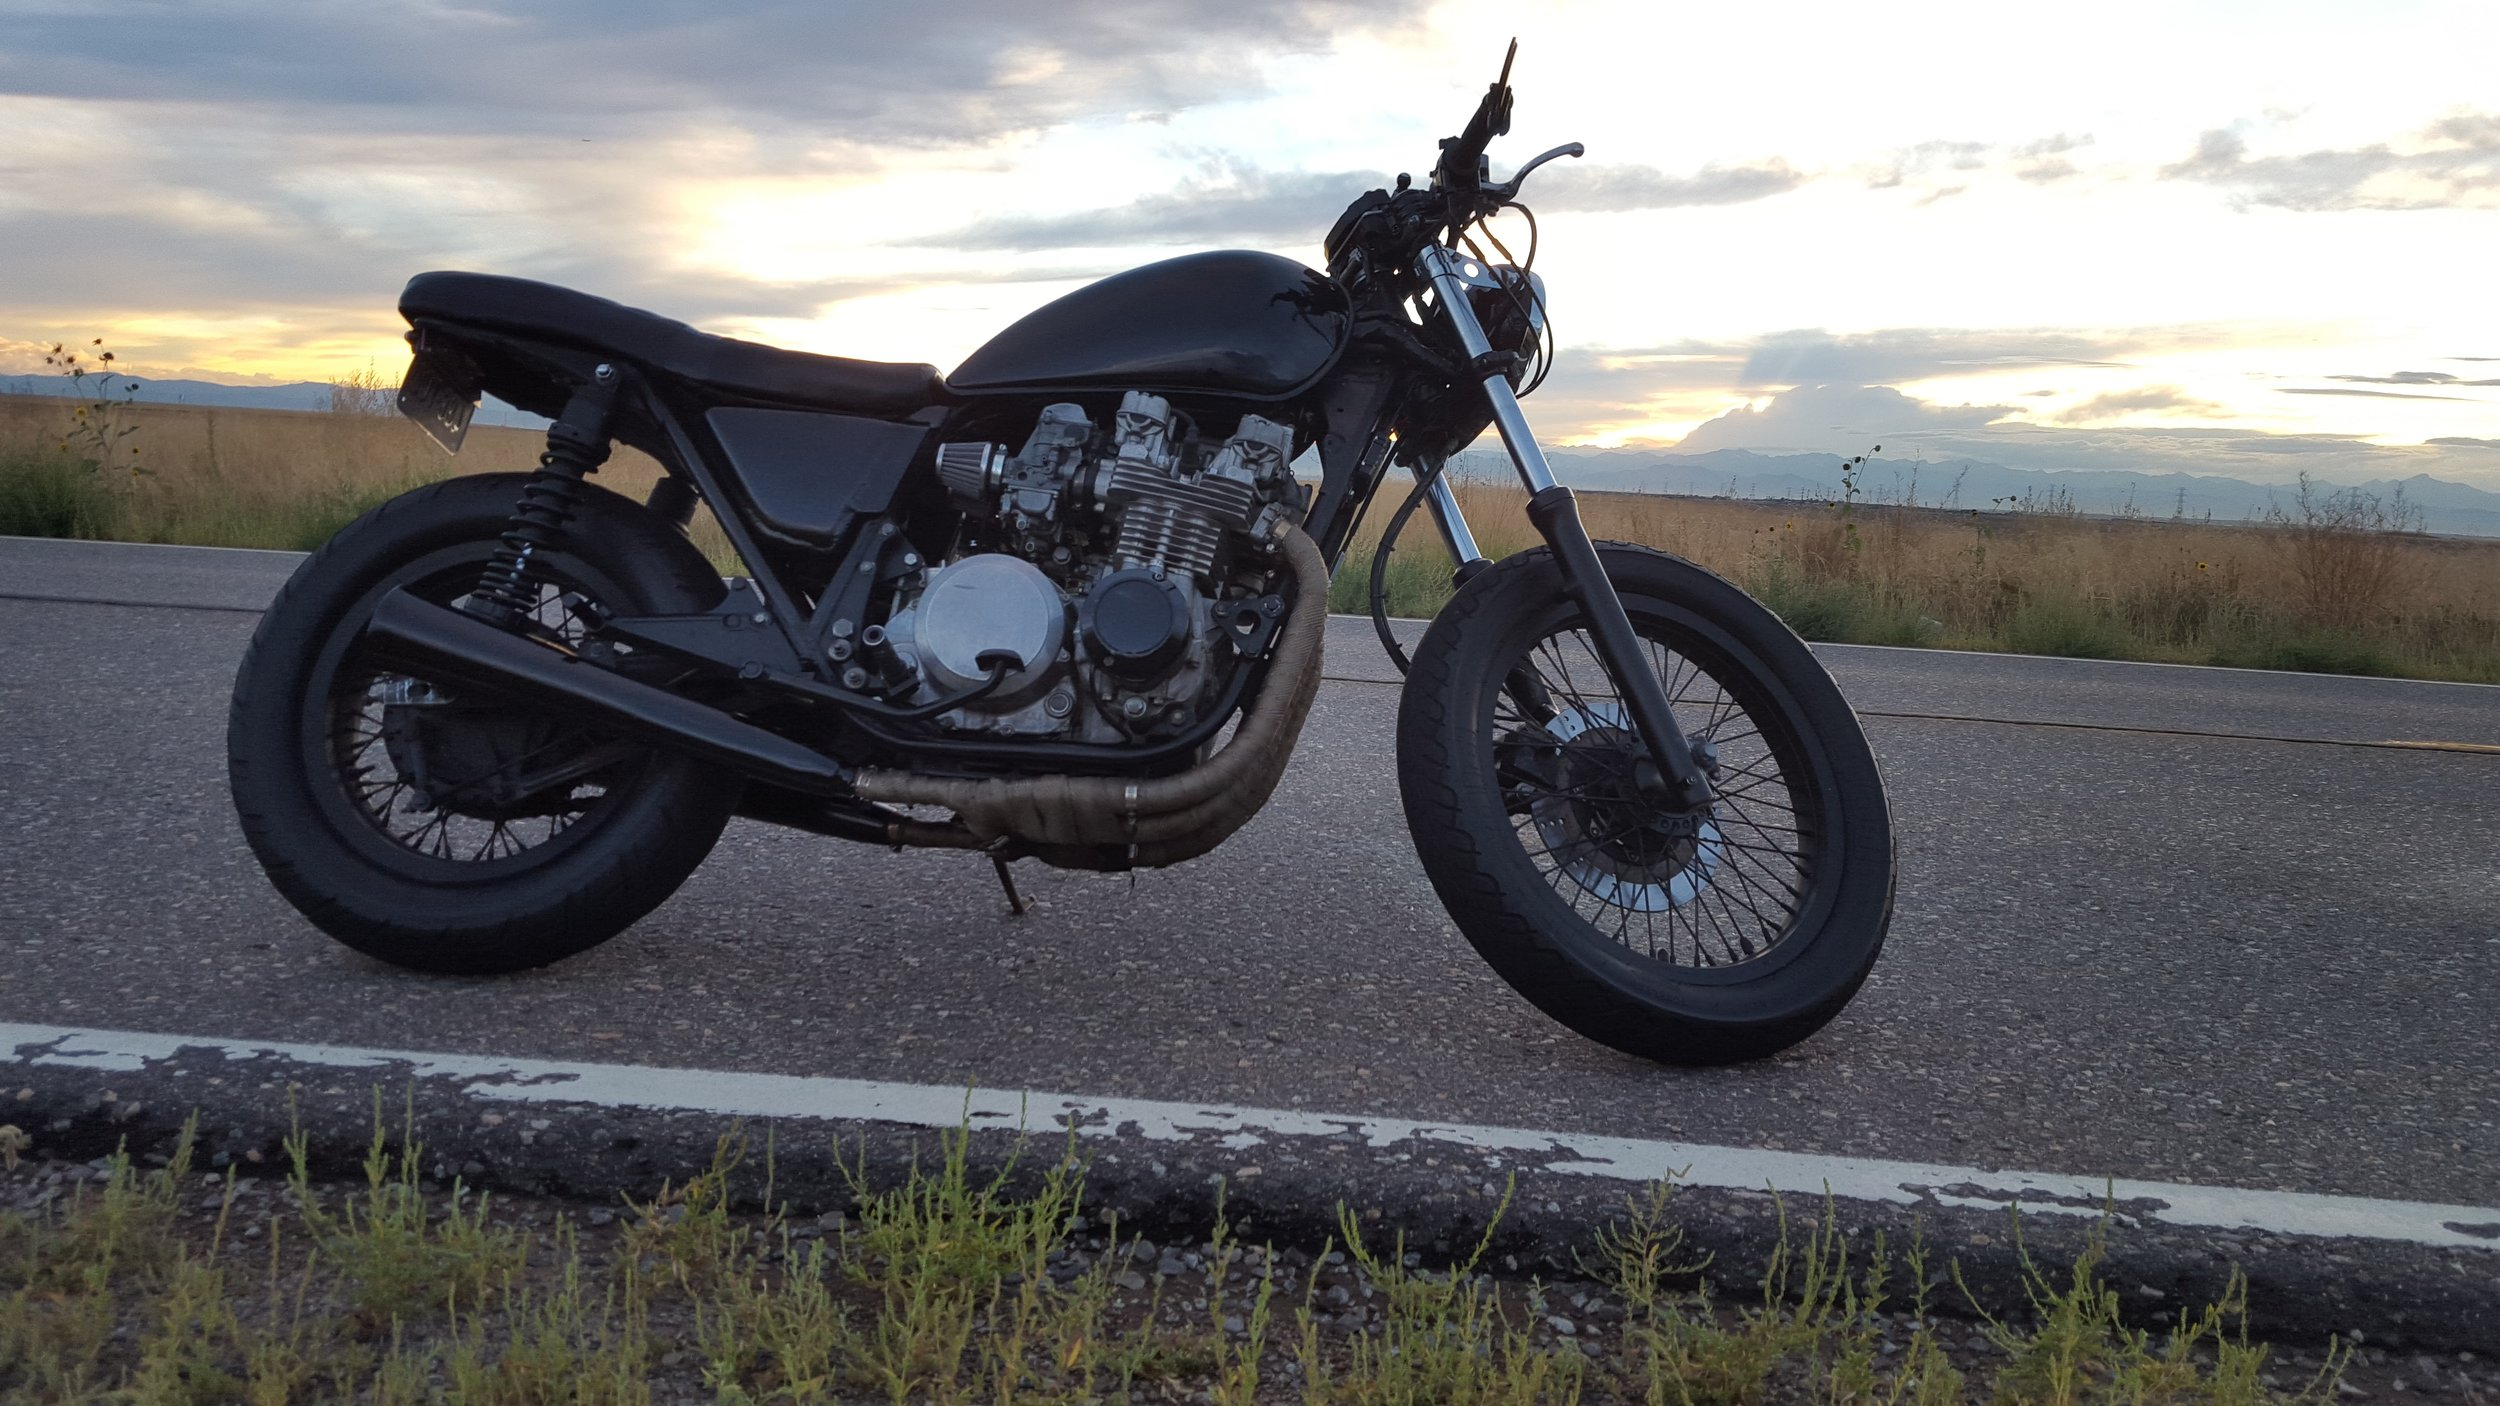 KZ650 brat lake motorcycle